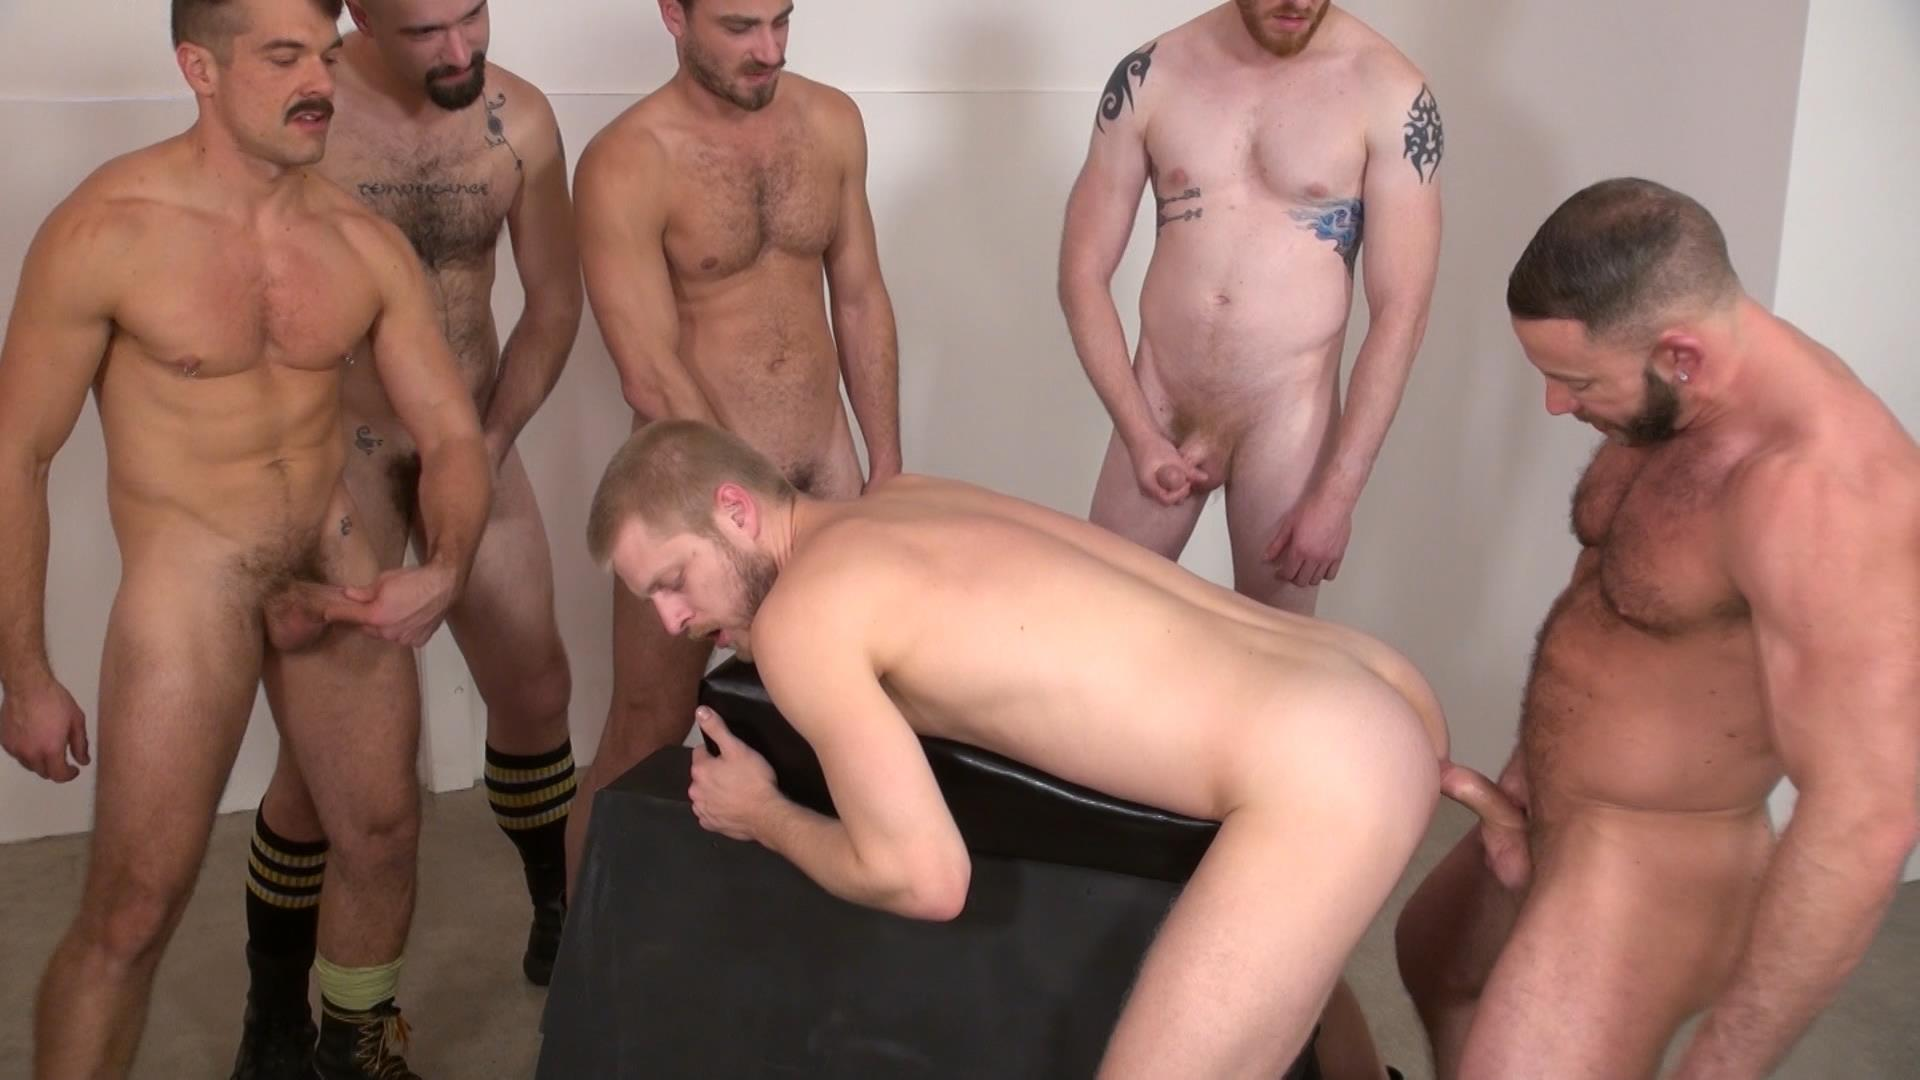 Amateur gay hardcore male nudity chez is 7